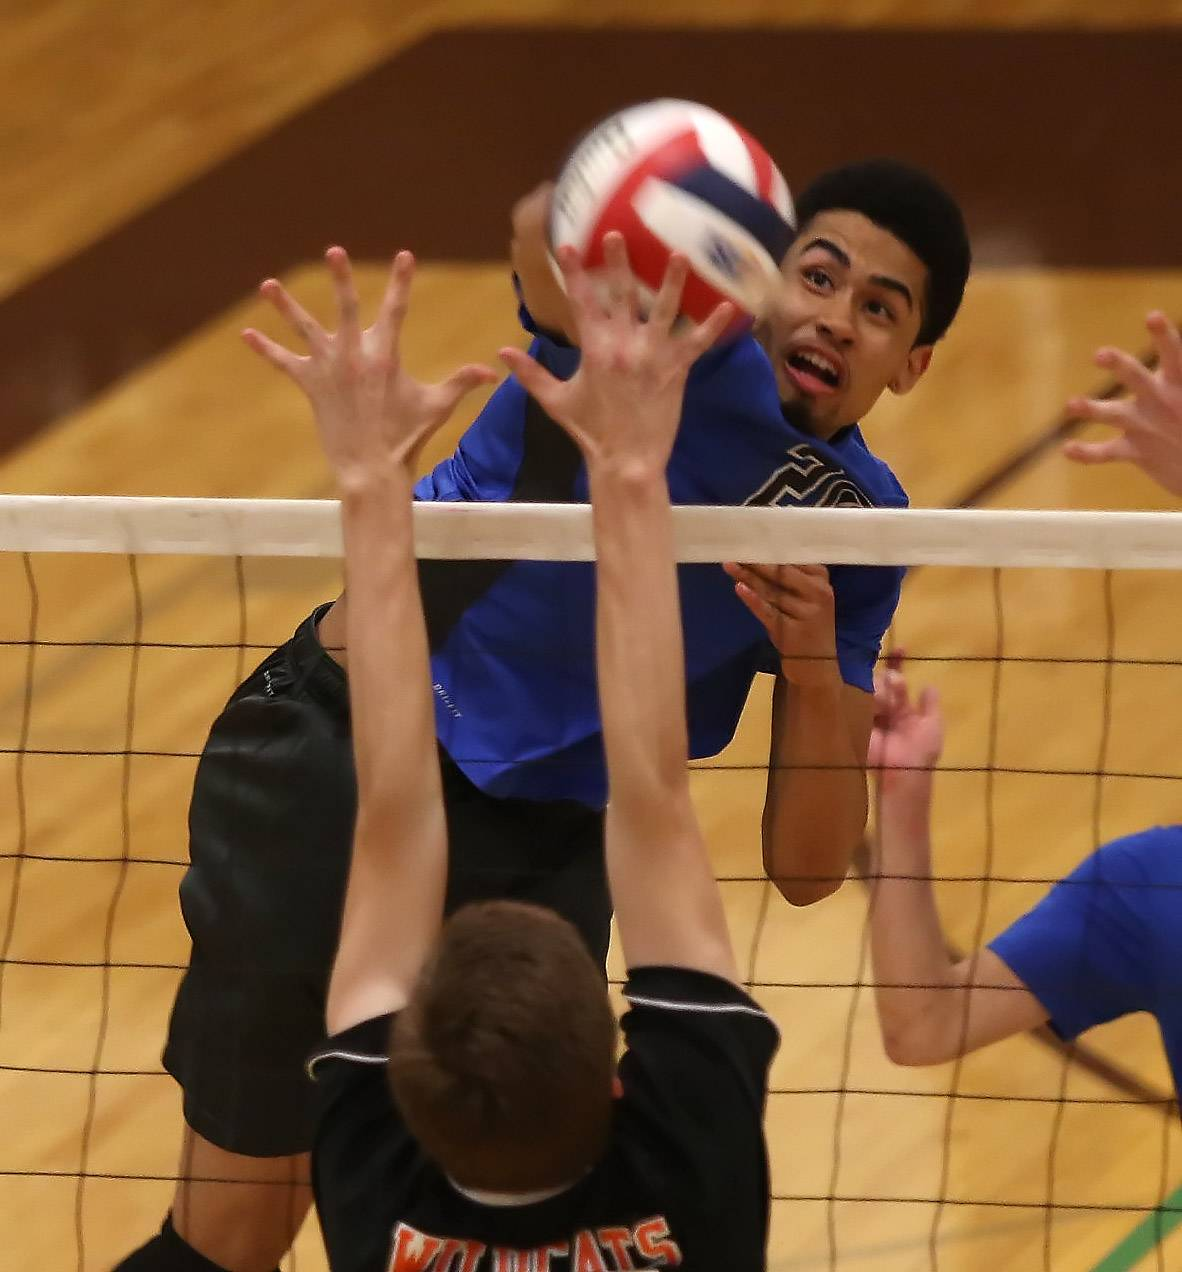 Vernon Hills hitter Lem Turner spikes the ball during regional semifinal play Tuesday at Carmel.